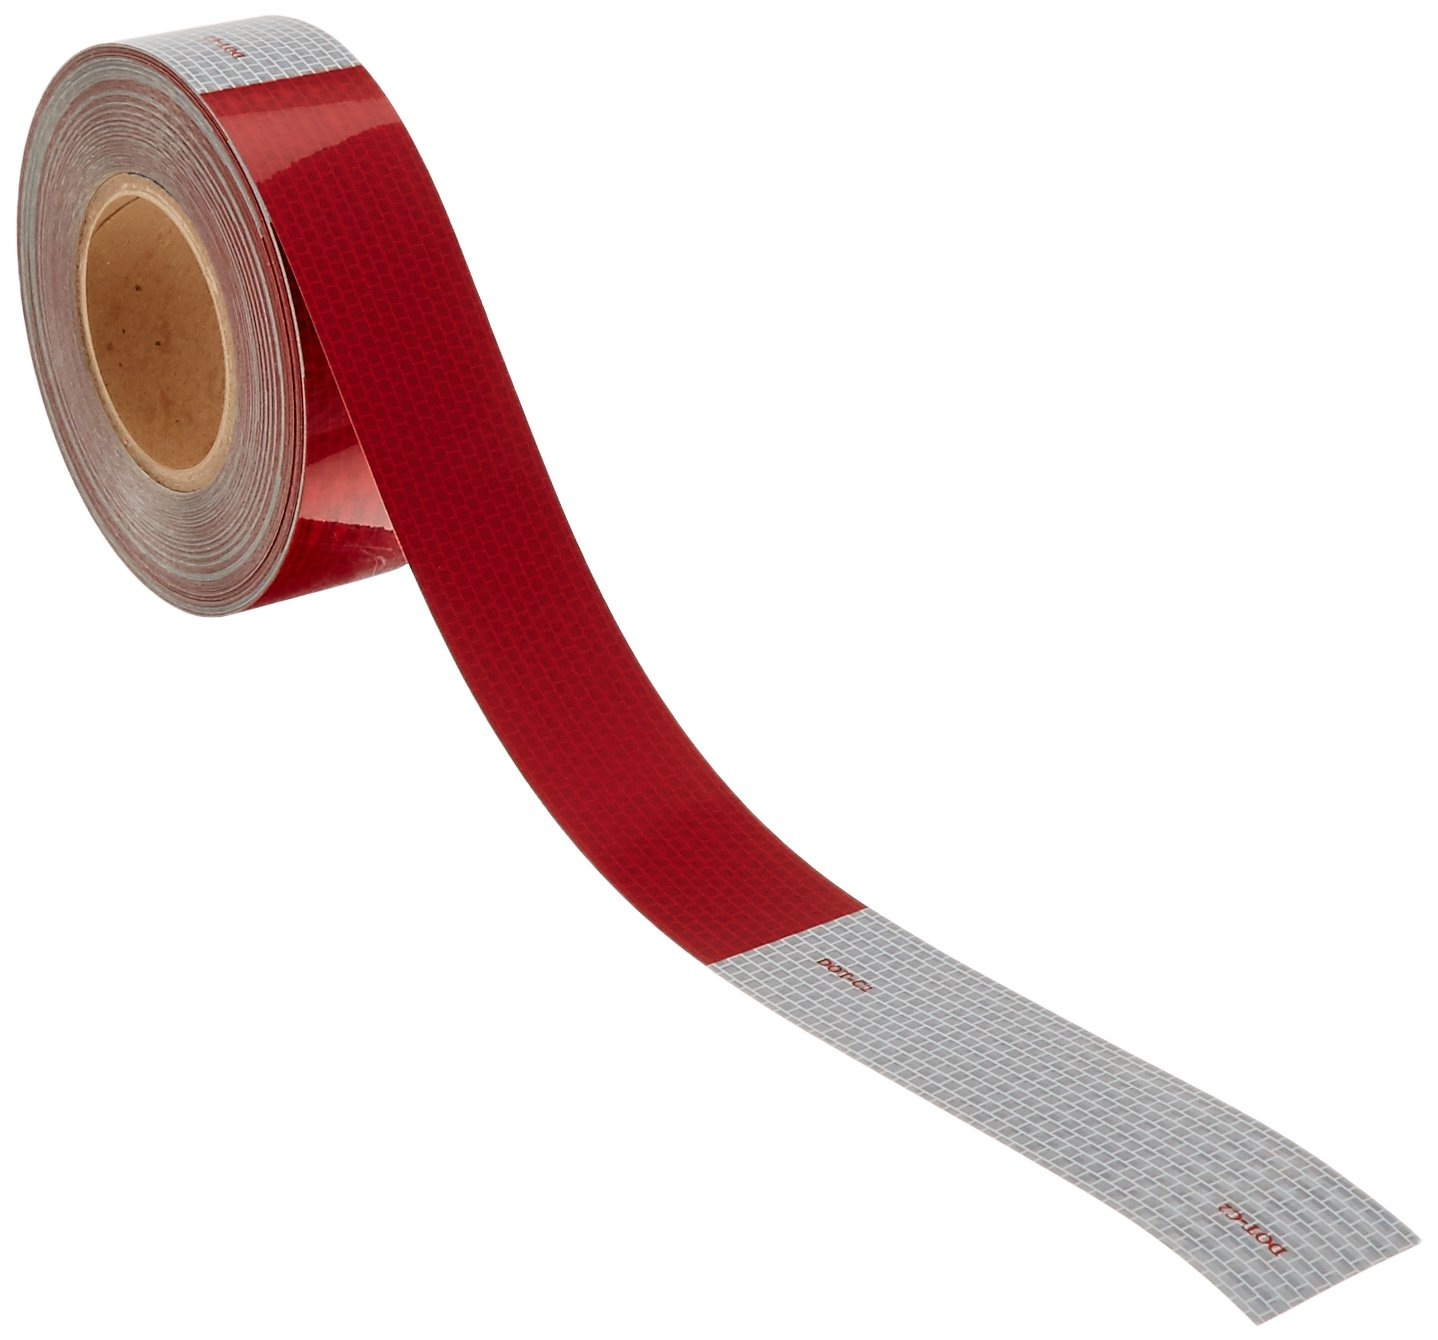 Grote 40650 Alternating 7' silver / 11' Red 2' x 150' Roll Conspicuity Tape